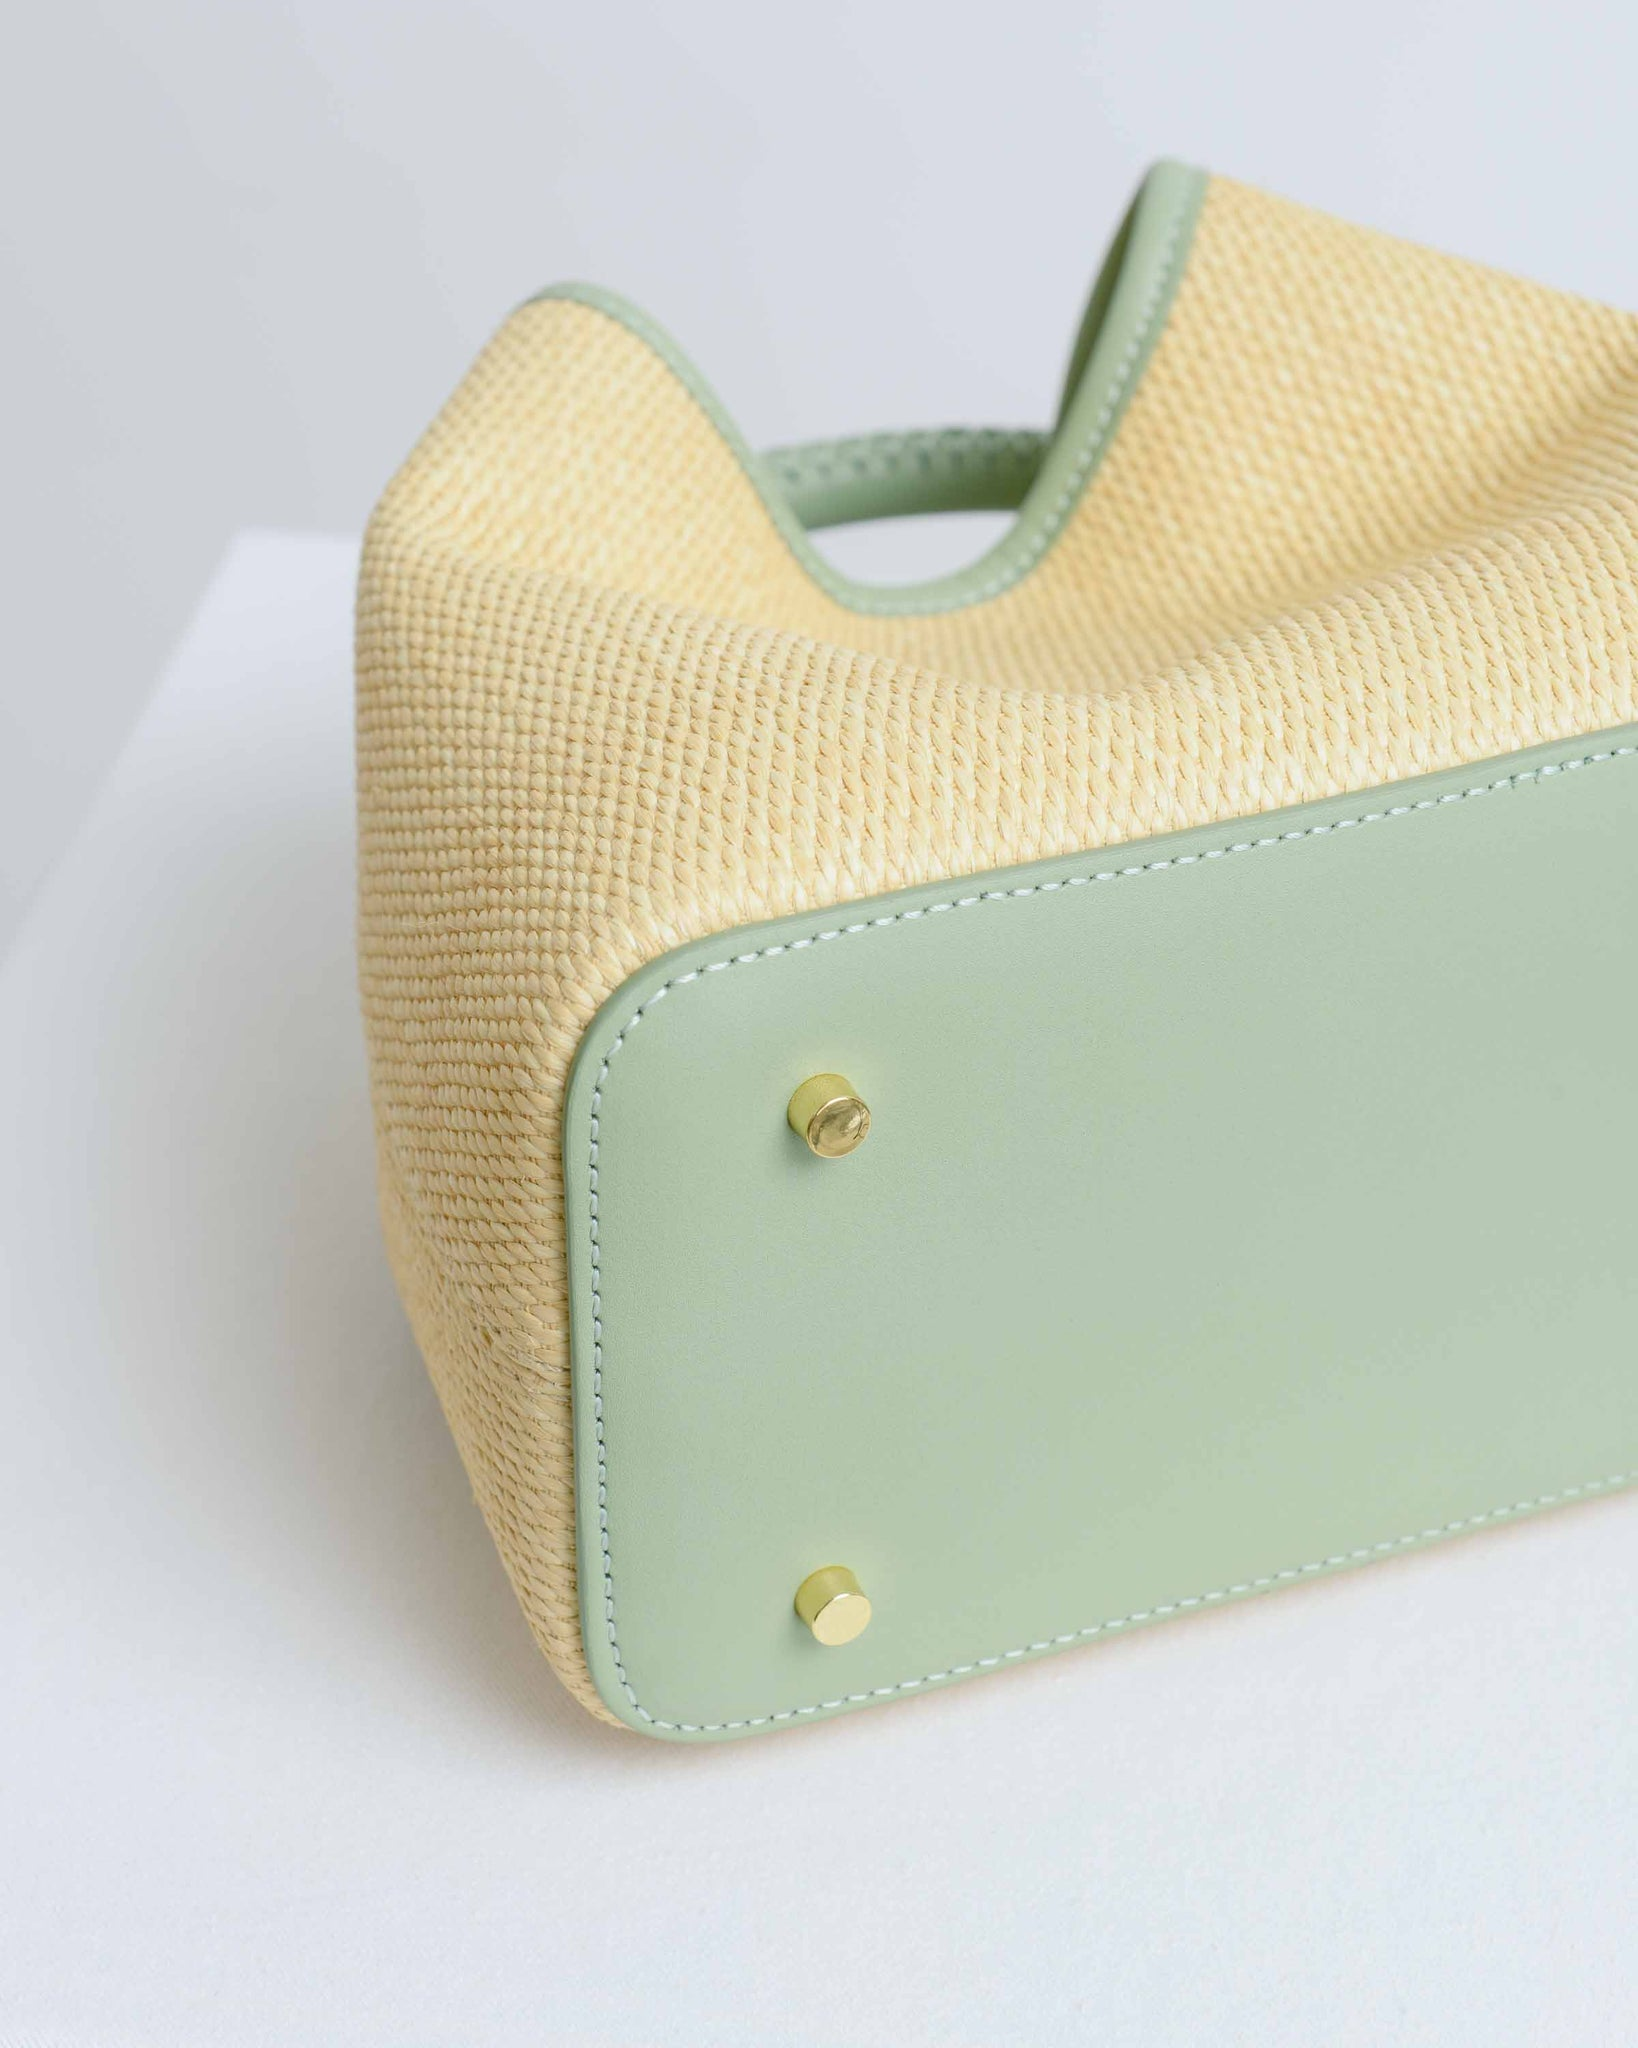 Beige & Mint Baozi Bag